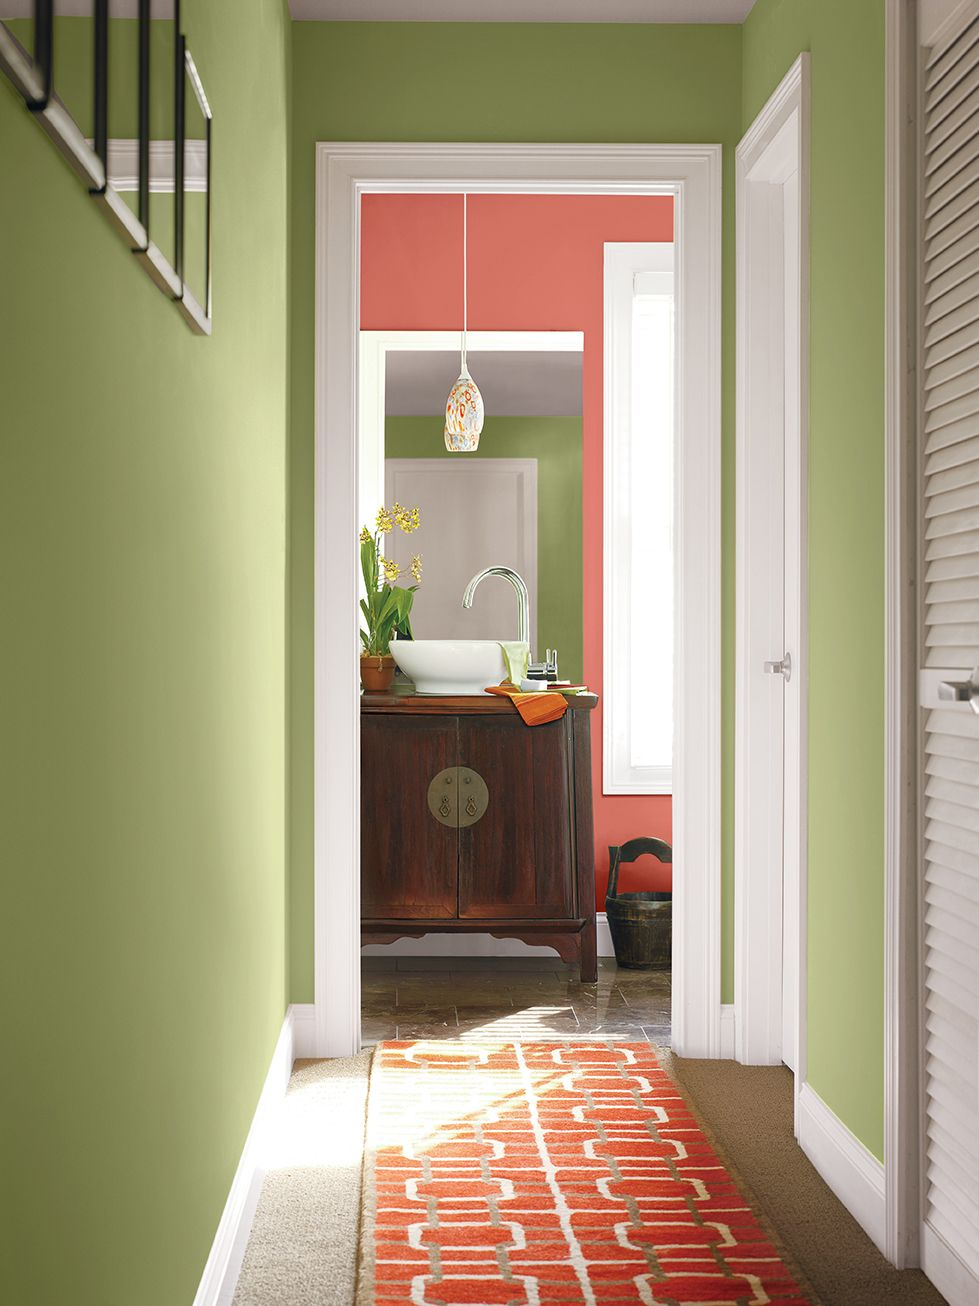 Coral Painted Rooms Connecting With Color Local Pros Share Their Tips And Secrets For